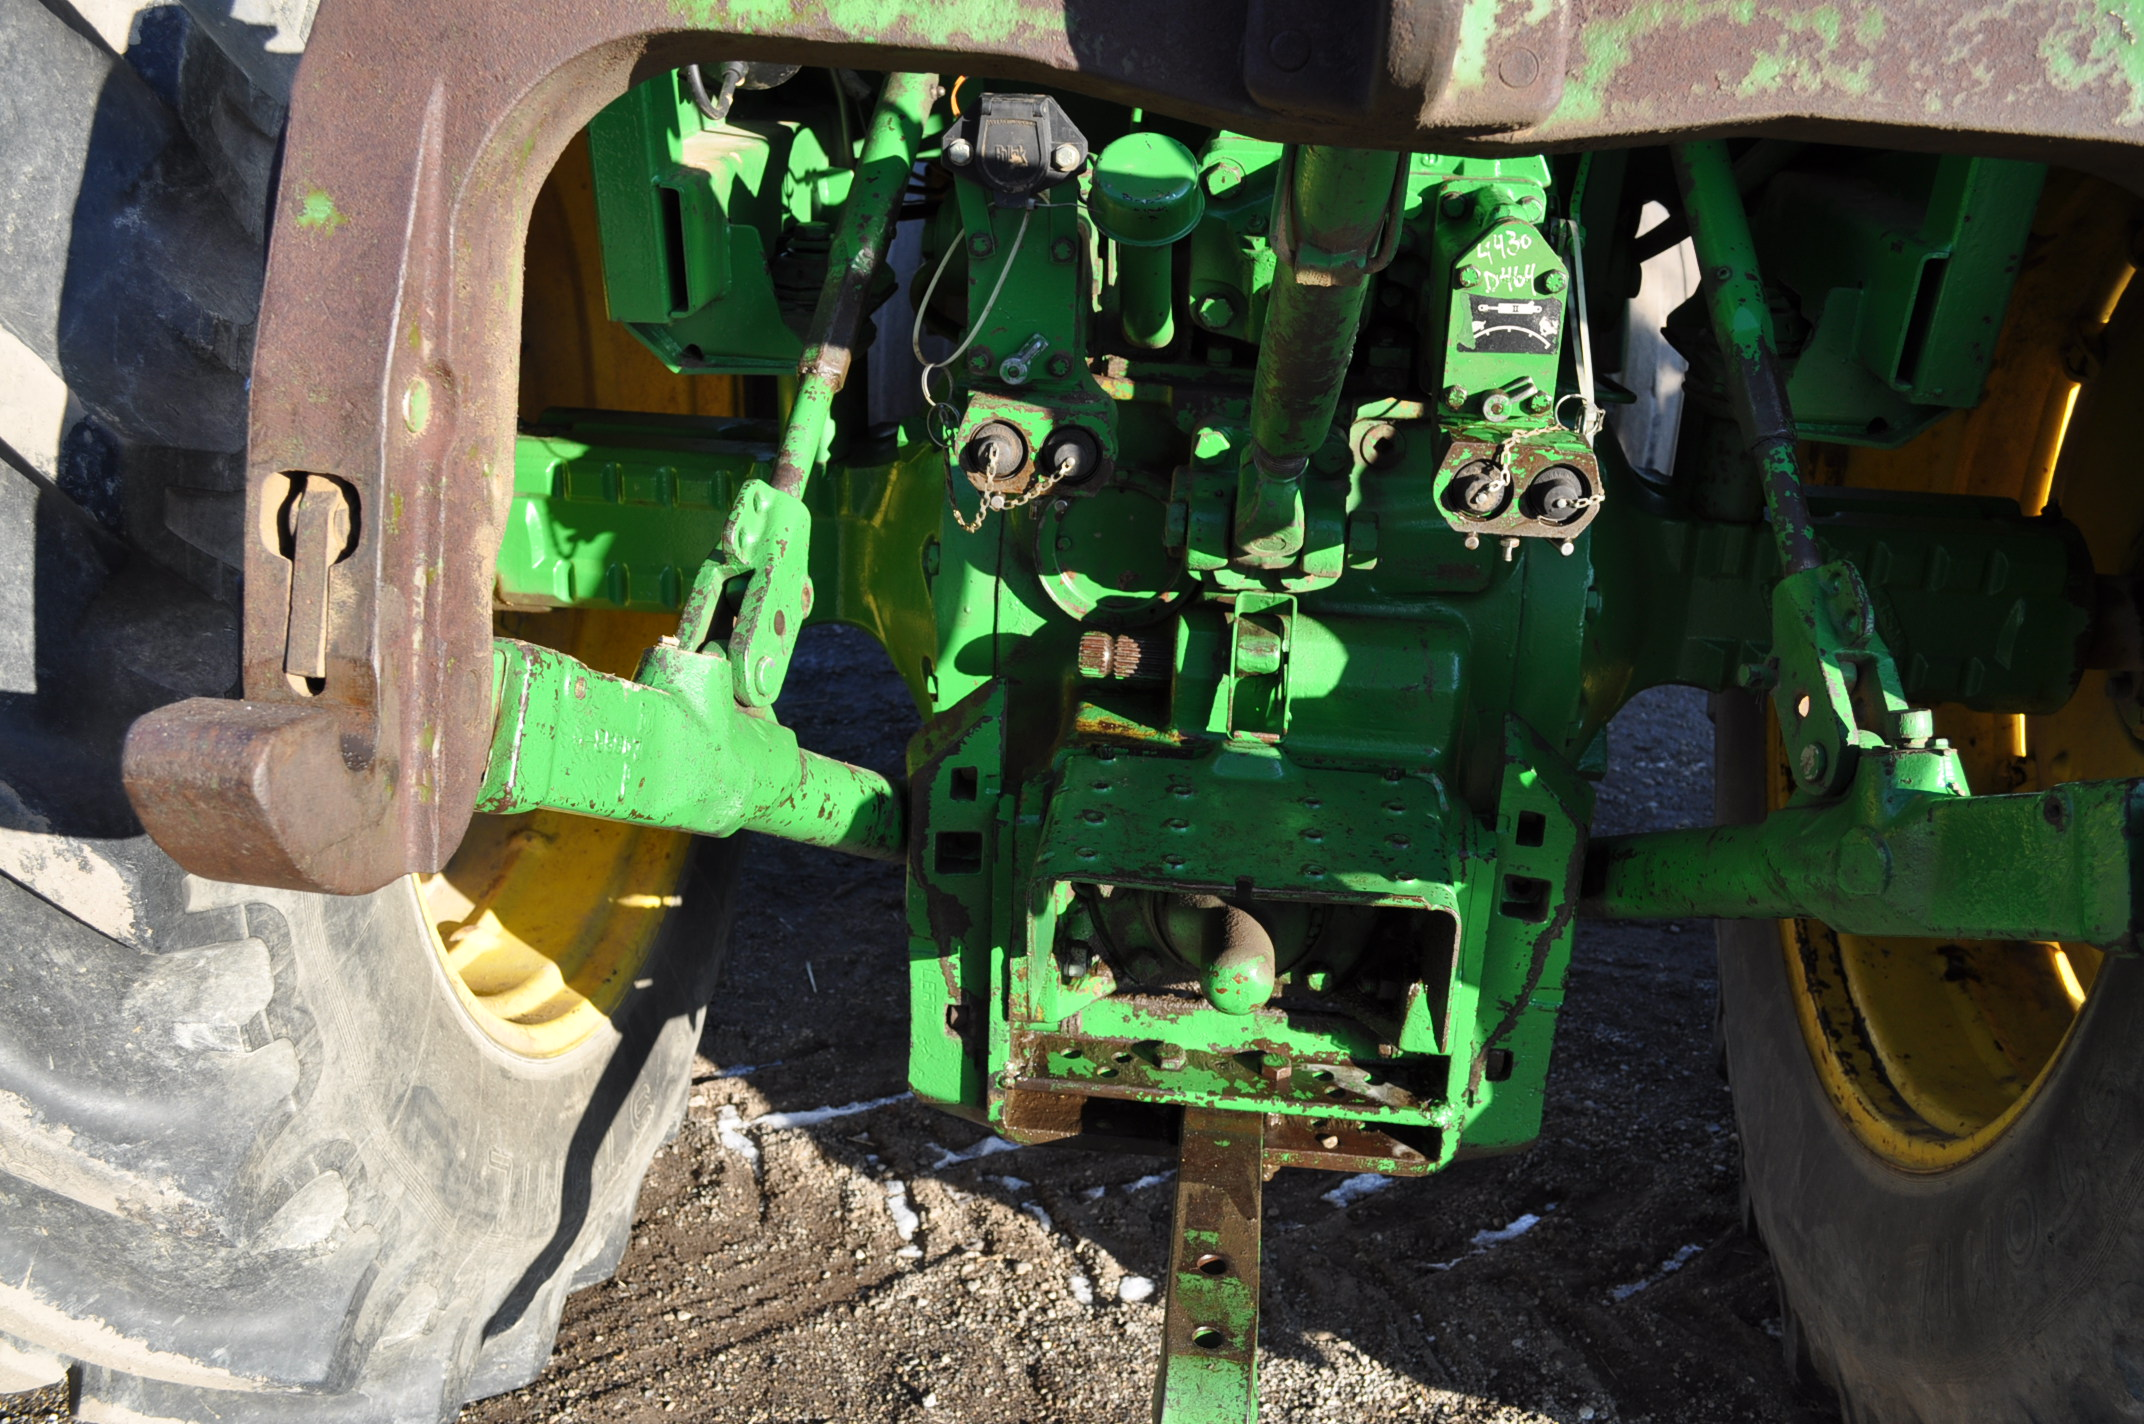 John Deere 4430 tractor, C/H/A, 18.4-38 duals, 11.00-16 front, front weights, Quad range, 2 hyd, 3 - Image 10 of 18